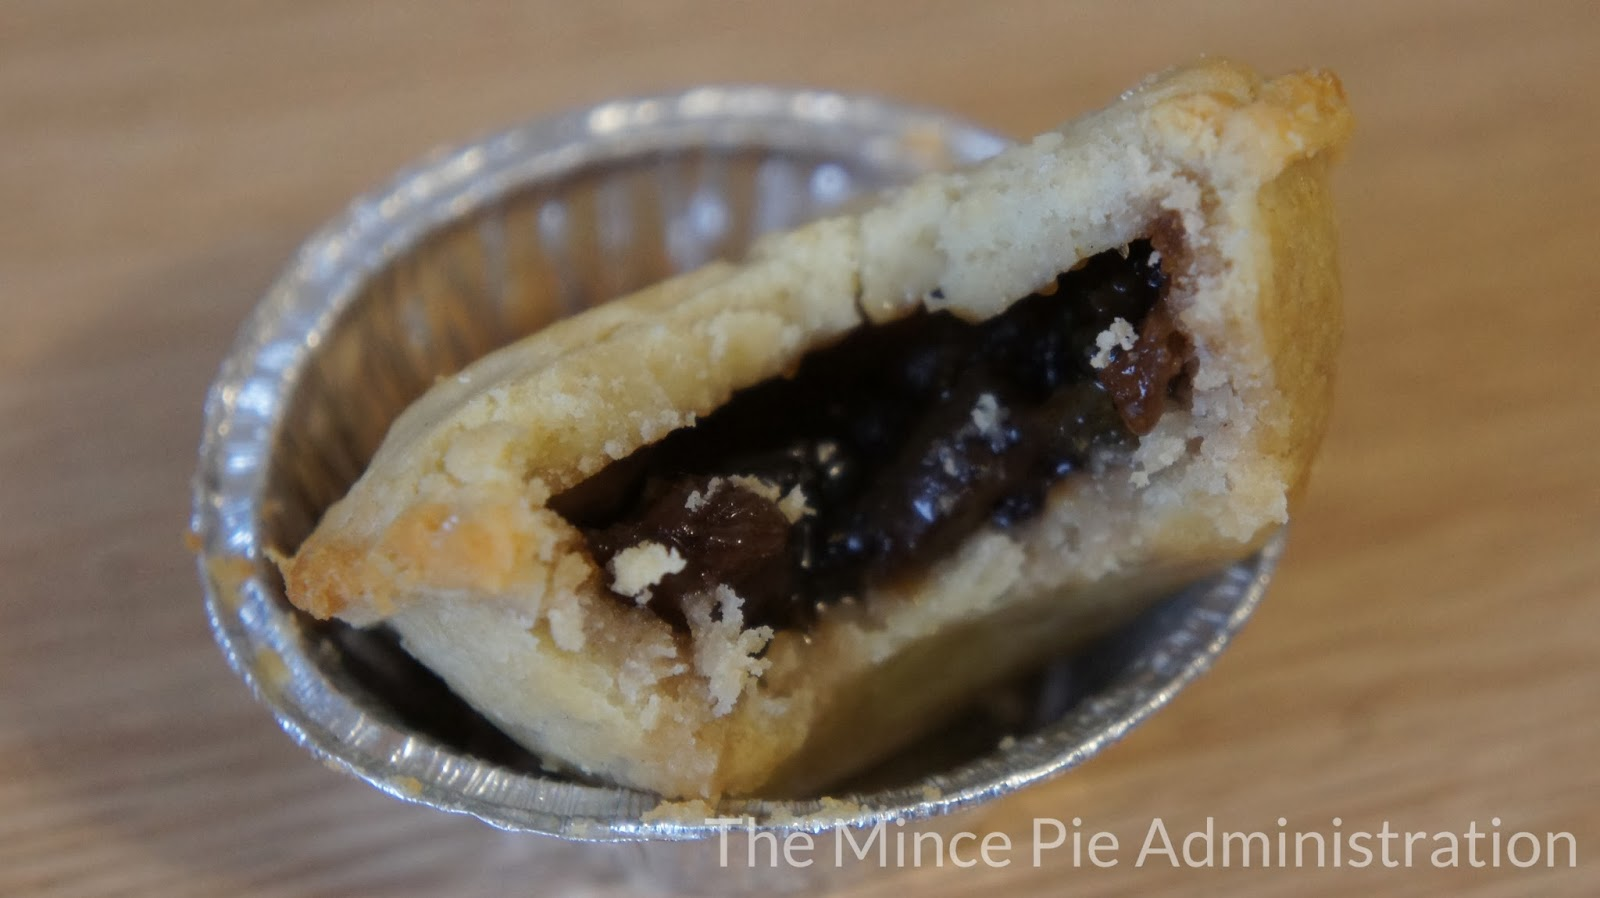 The Mince Pie Administration: Iceland 6 Deep Fill Mince Pies